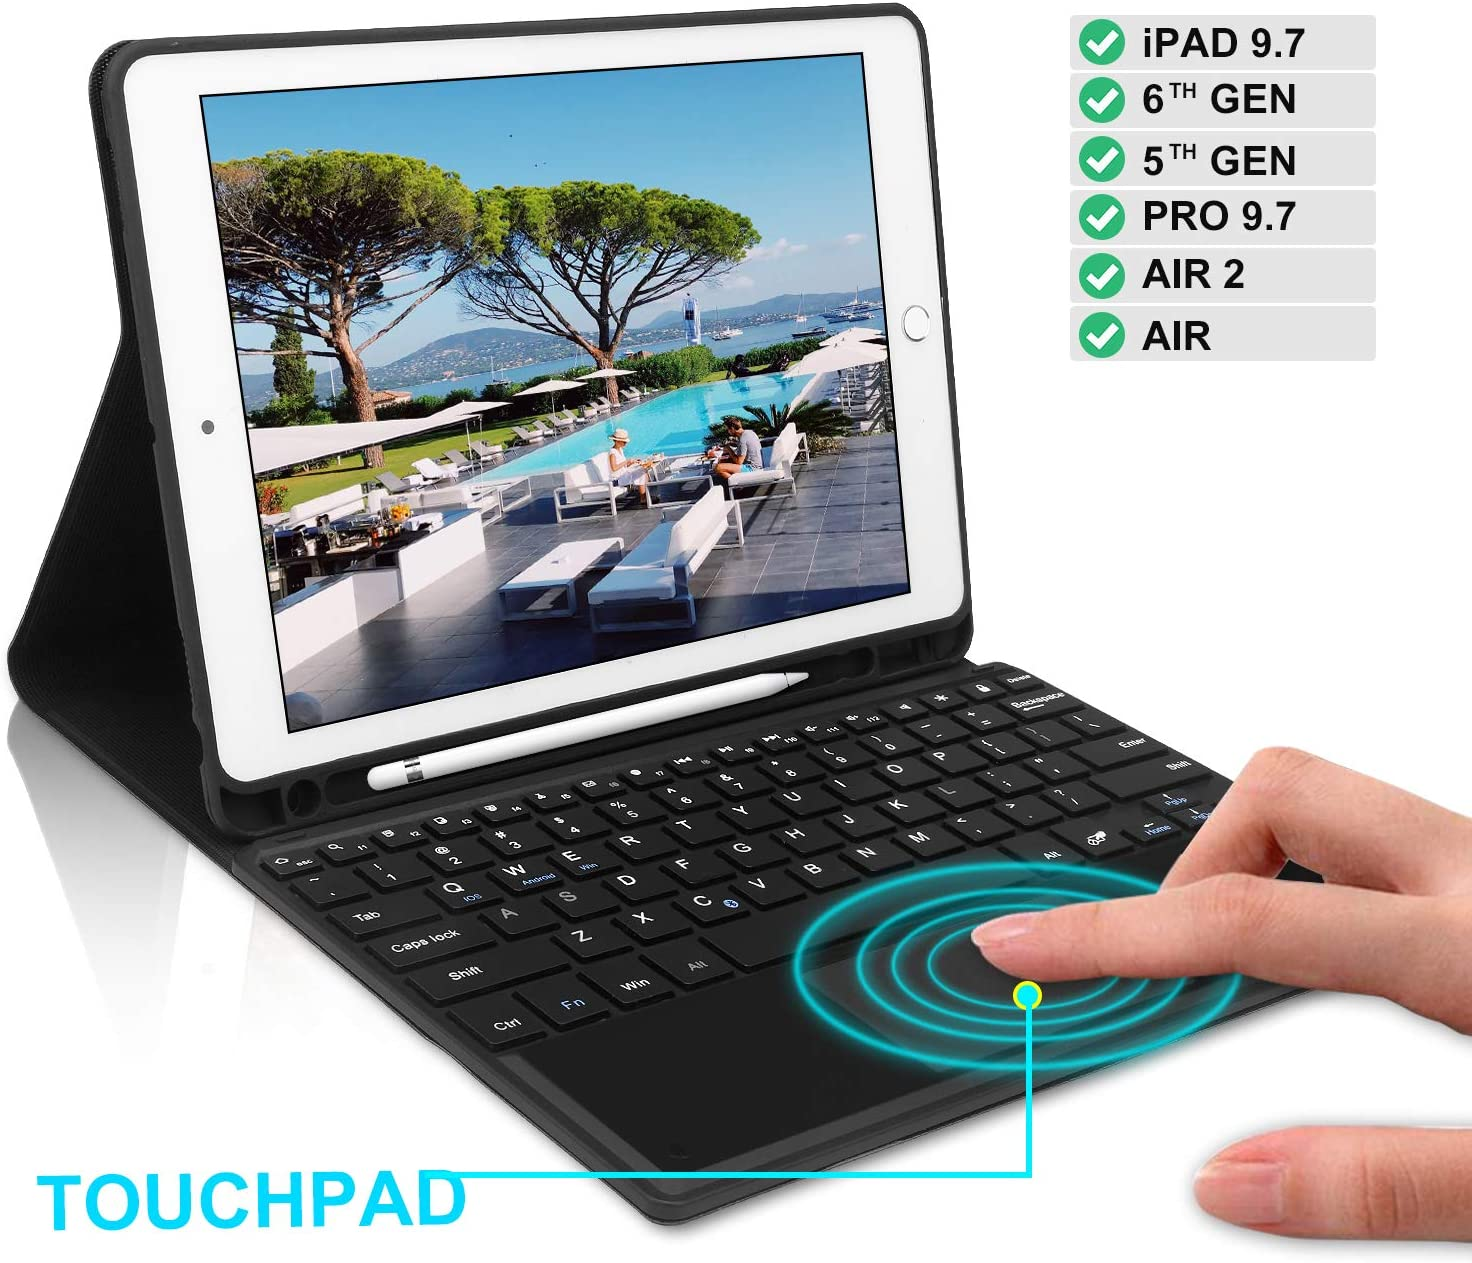 Keyboard Case 9.7 inch Touchpad Bluetooth with Pencil Holder Compatible with iPad 2018 6th Gen,iPad Pro 2017 5th Gen iPad Pro 9.7 iPad Air 2/&1 Black iPad Air Case with Touchpad Keyboard